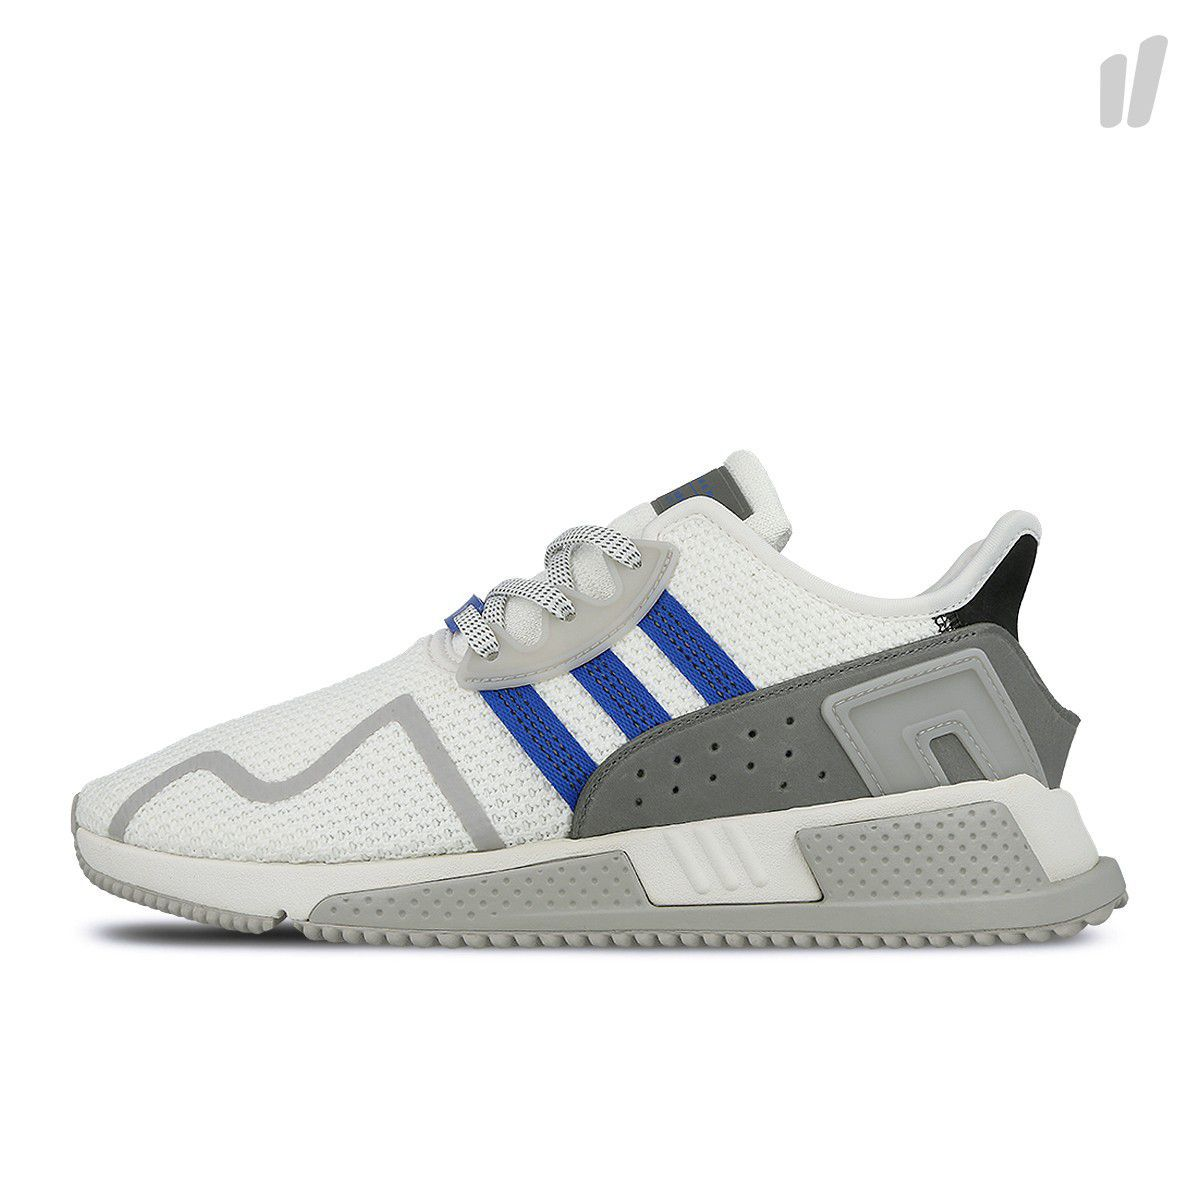 the latest 5c5fe 34d09 ... Adidas ORIGINALS EQT CUSHION ADV Sneakers White Casual Shoes ...